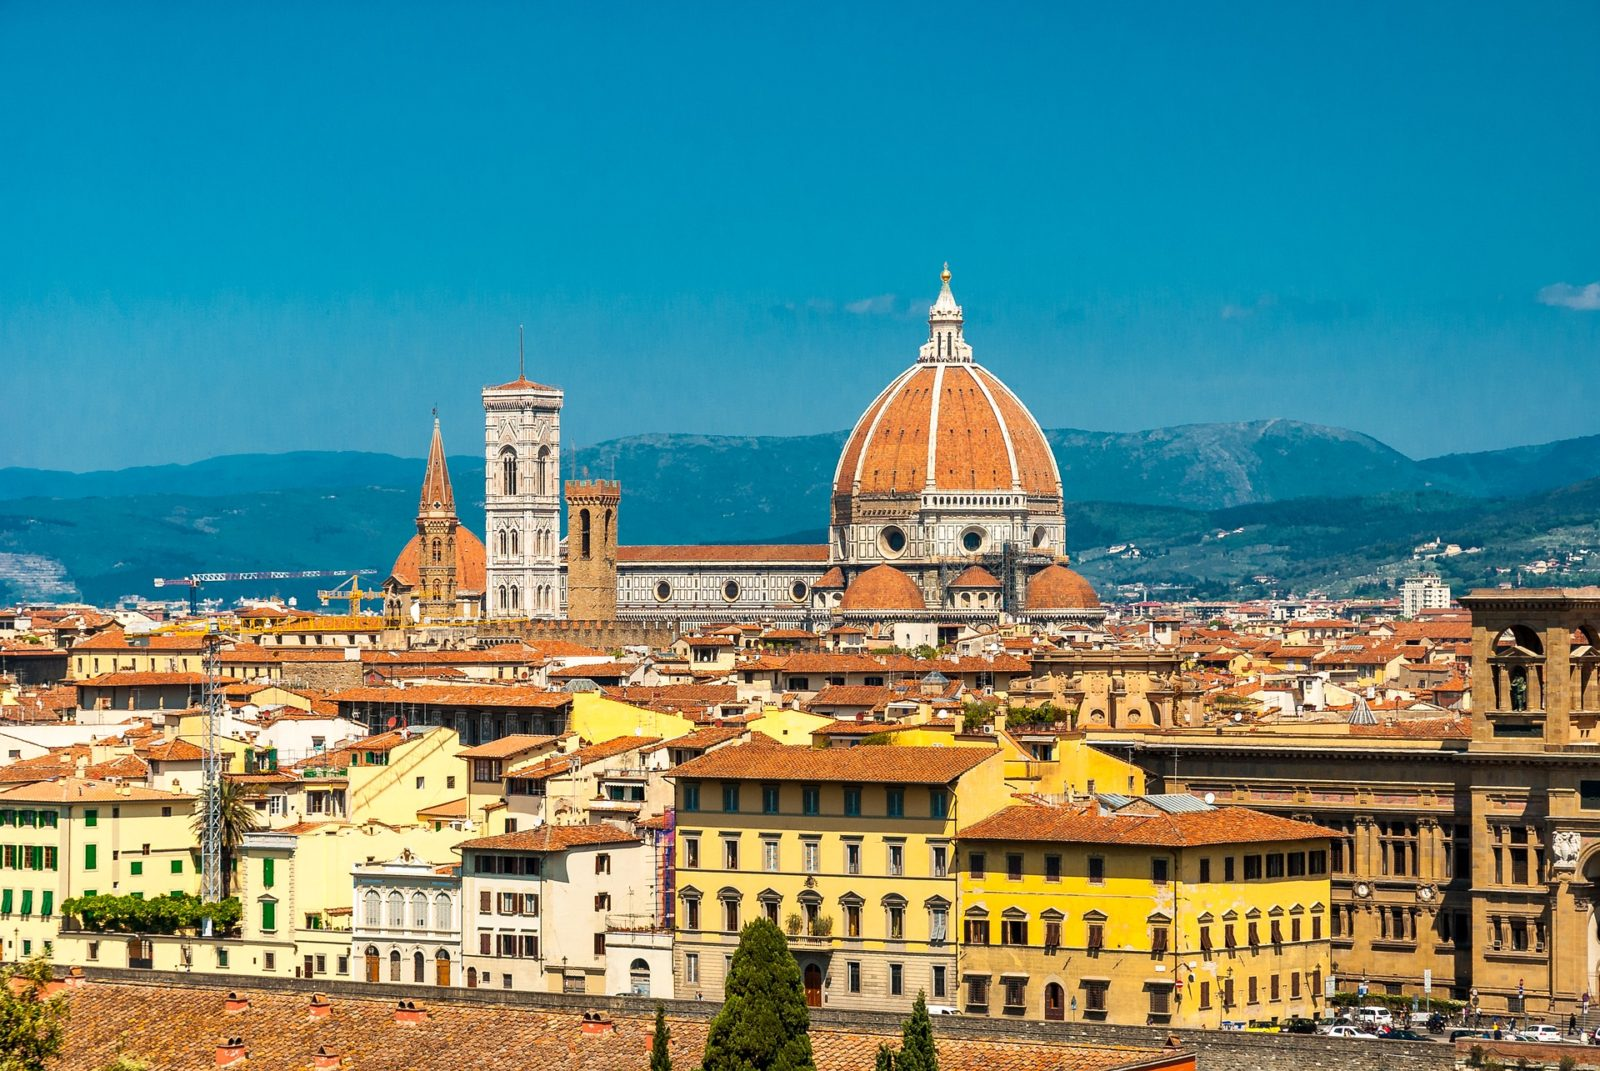 Top Attractions And Things To Do In Florence, Italy